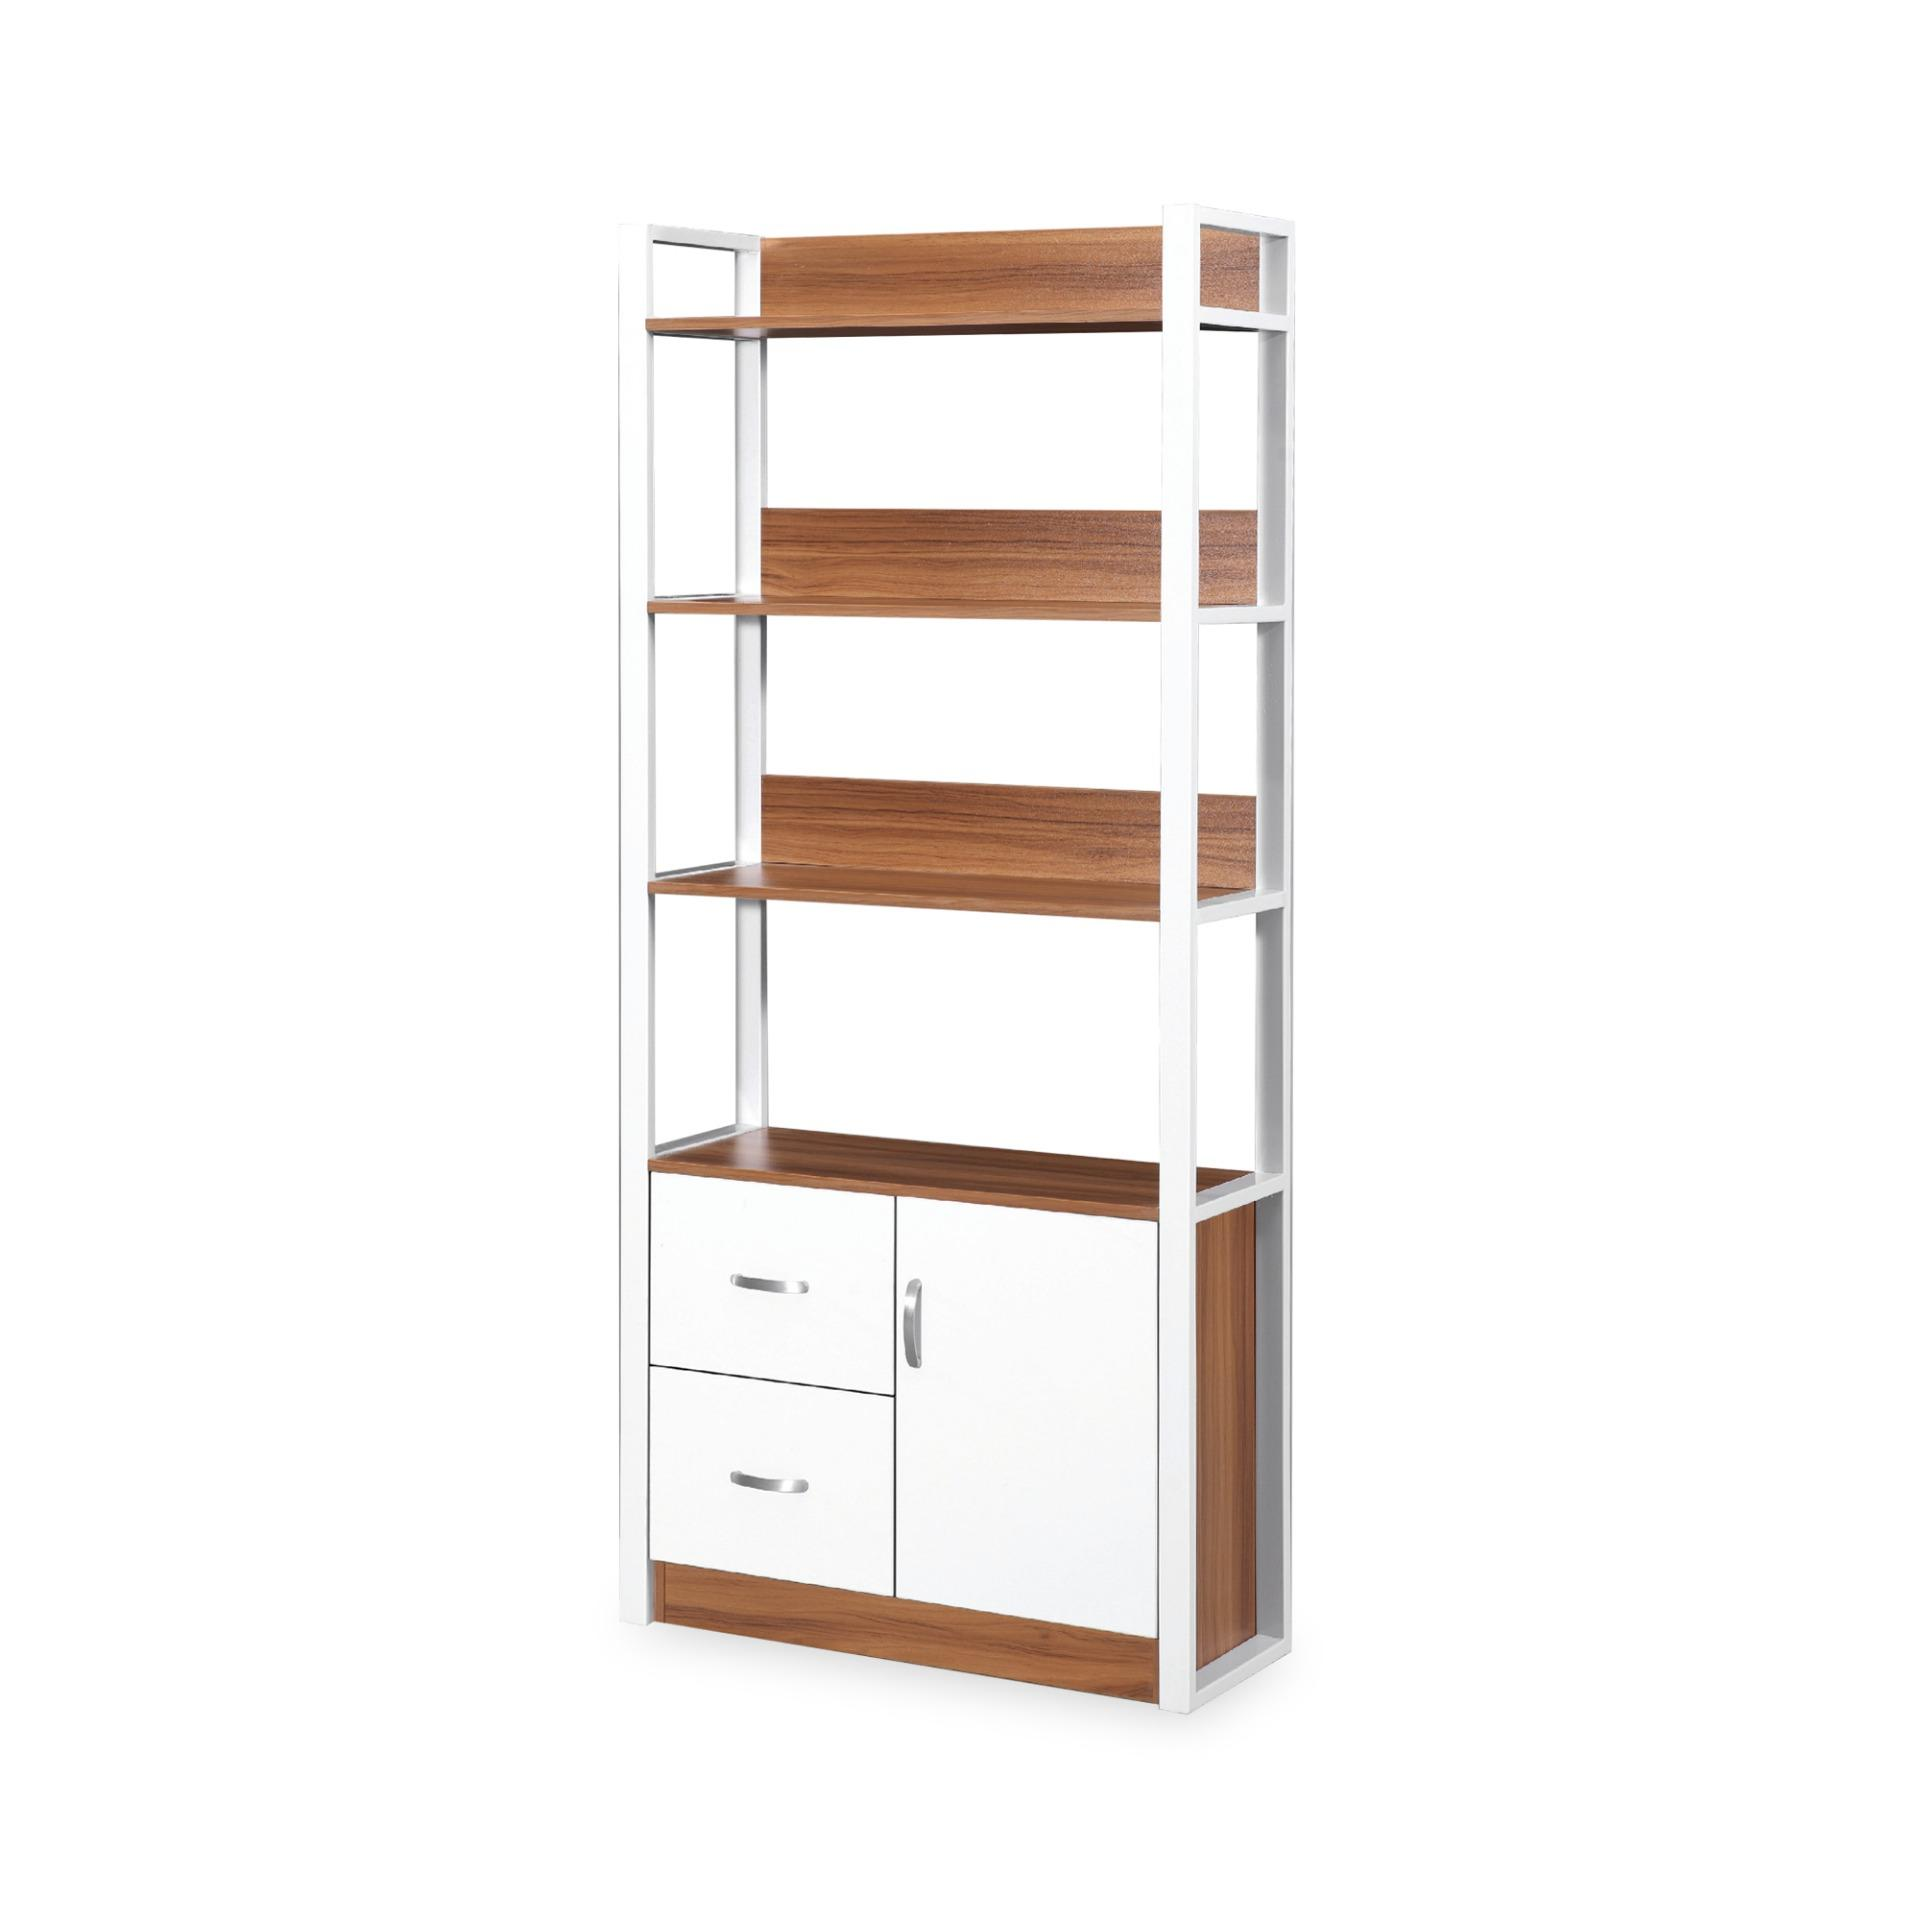 Ambra Book Cabinet With Storage Shelves (FREE DELIVERY)(FREE ASSEMBLY)